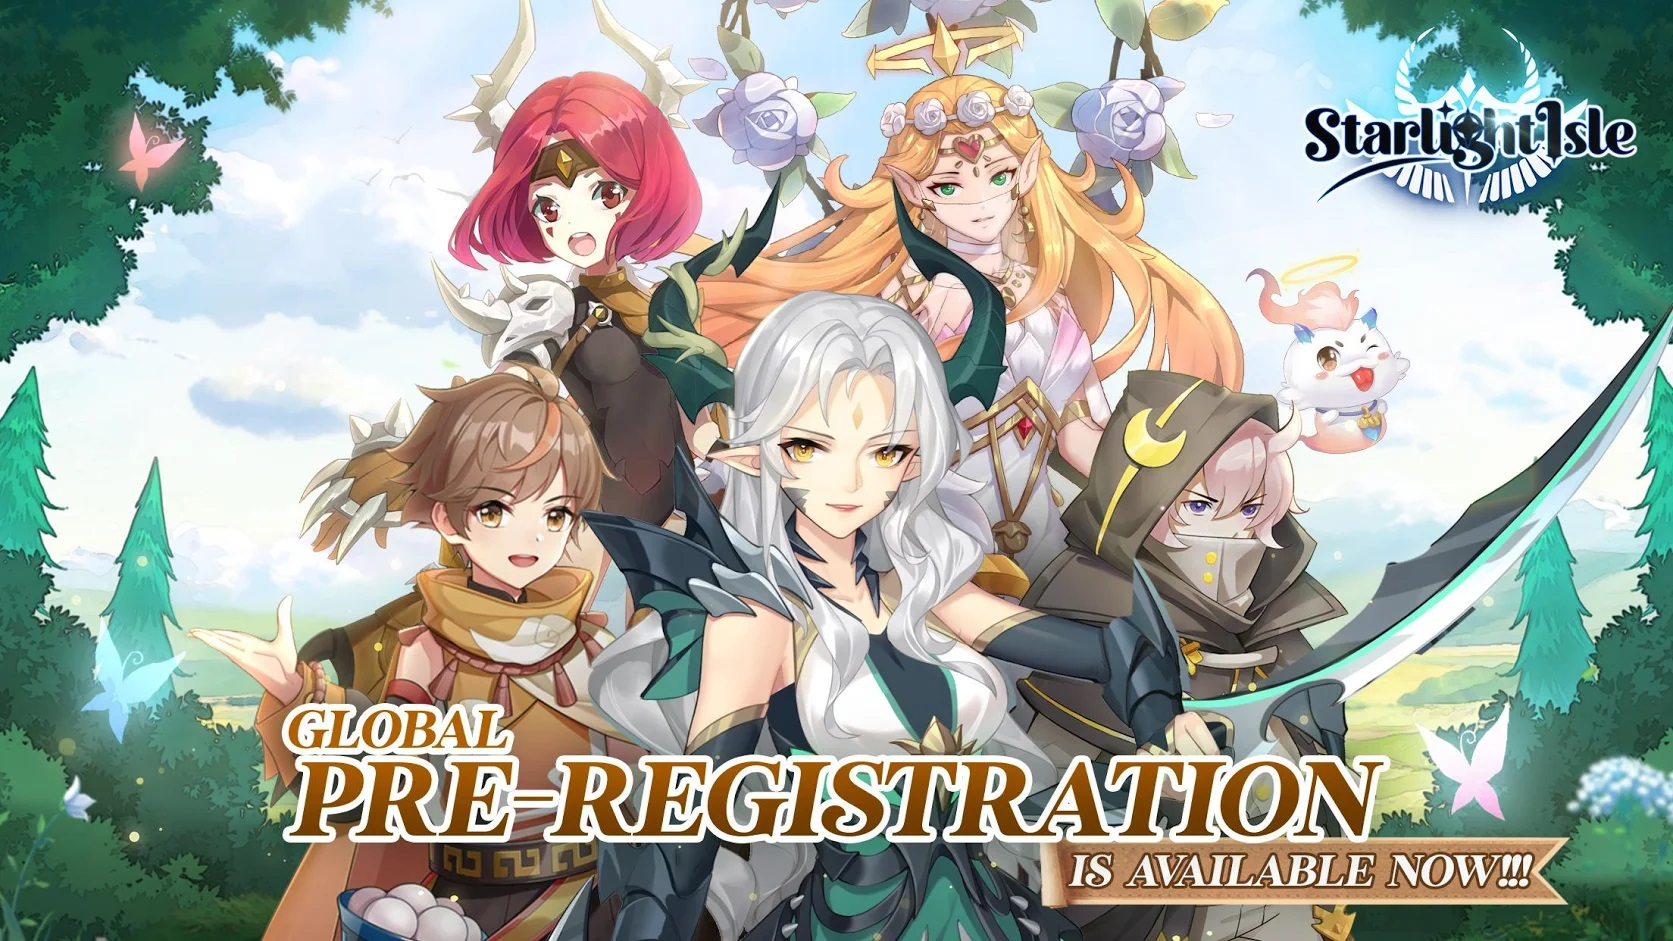 EYOUGAME's New MMORPG, Starlight Isle, Currently in Pre-Registration and Releasing Soon